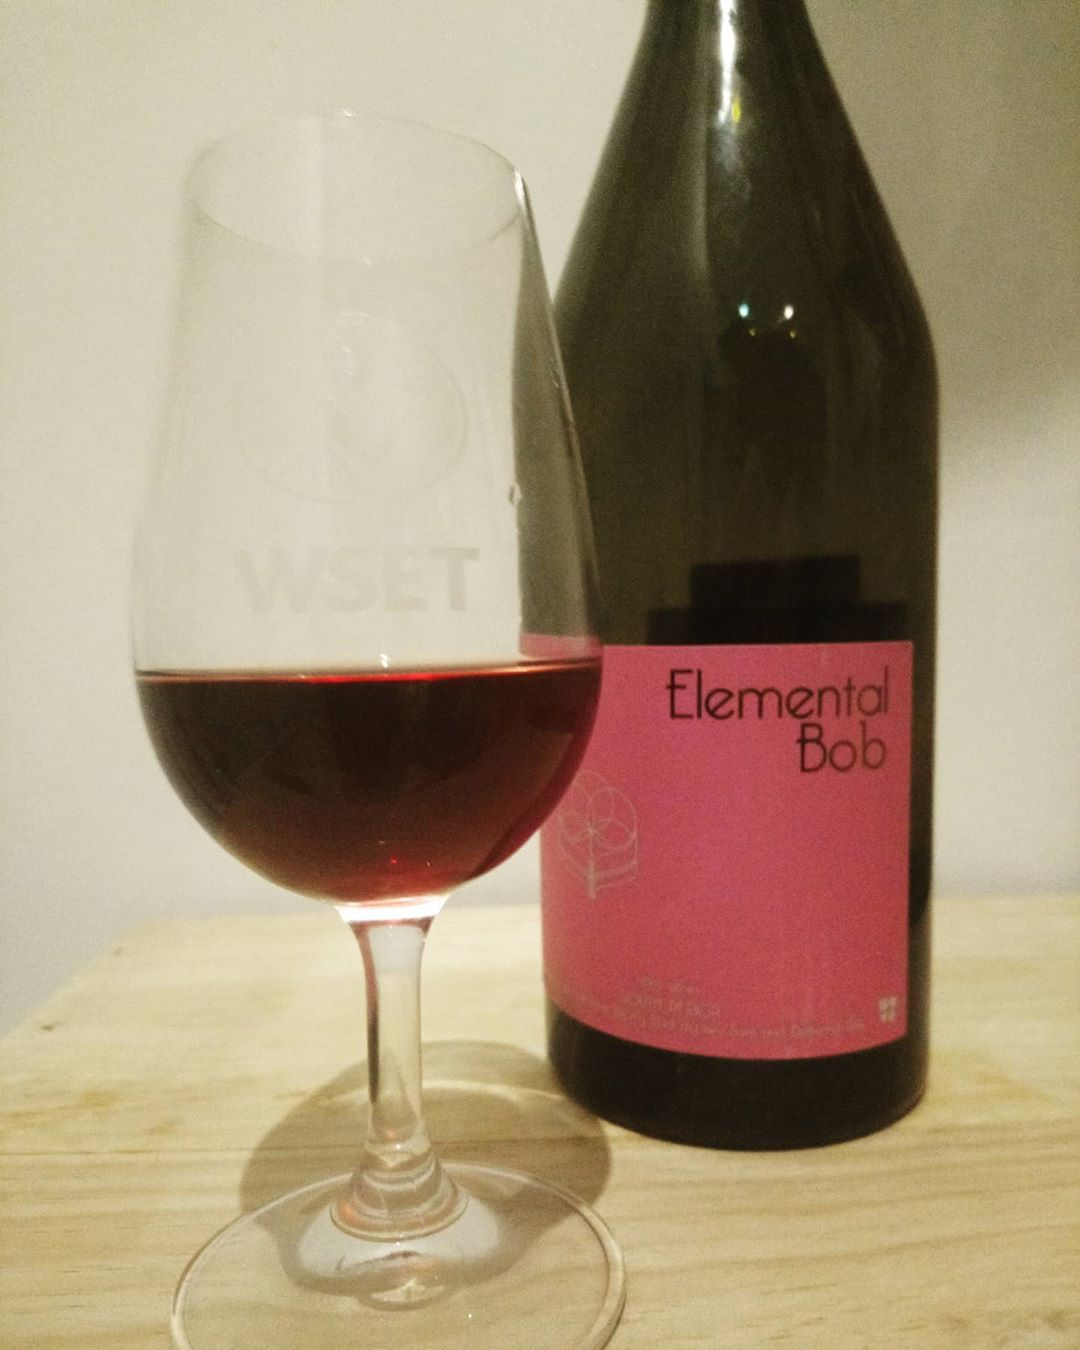 Red N Wine Dipwset On Instagram South African Pinot Noir It S Very Similar In Style To The Burgundian Pinot Noir Excellent Ba In 2020 Wine Pinot Noir Pinot